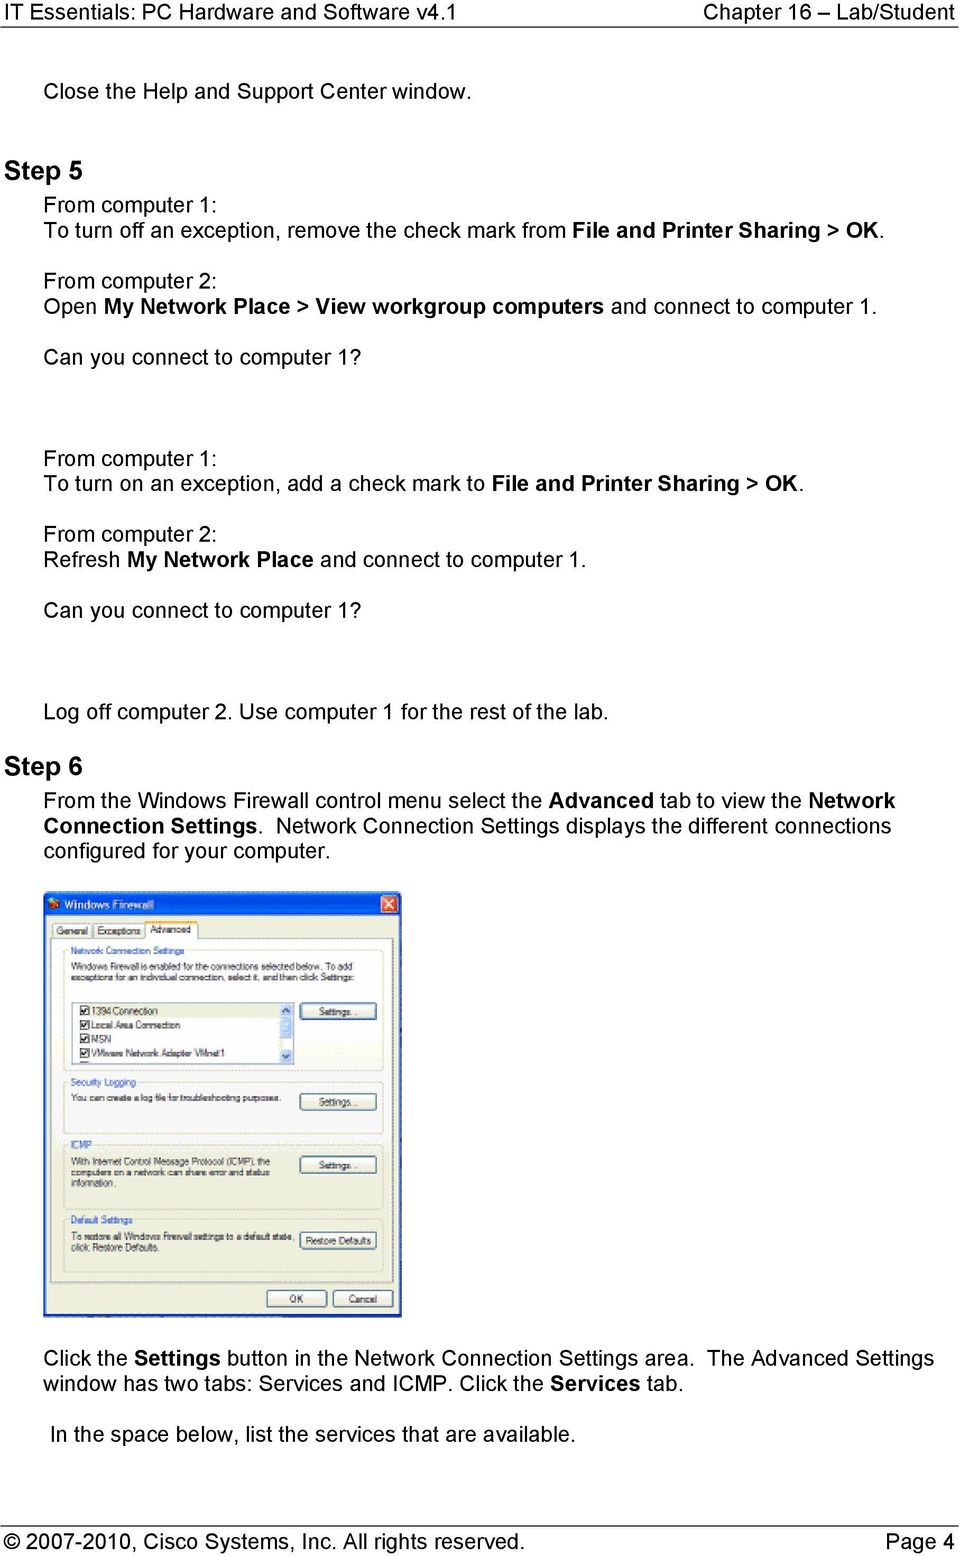 From computer 1: To turn on an exception, add a check mark to File and Printer Sharing > OK. From computer 2: Refresh My Network Place and connect to computer 1. Can you connect to computer 1?